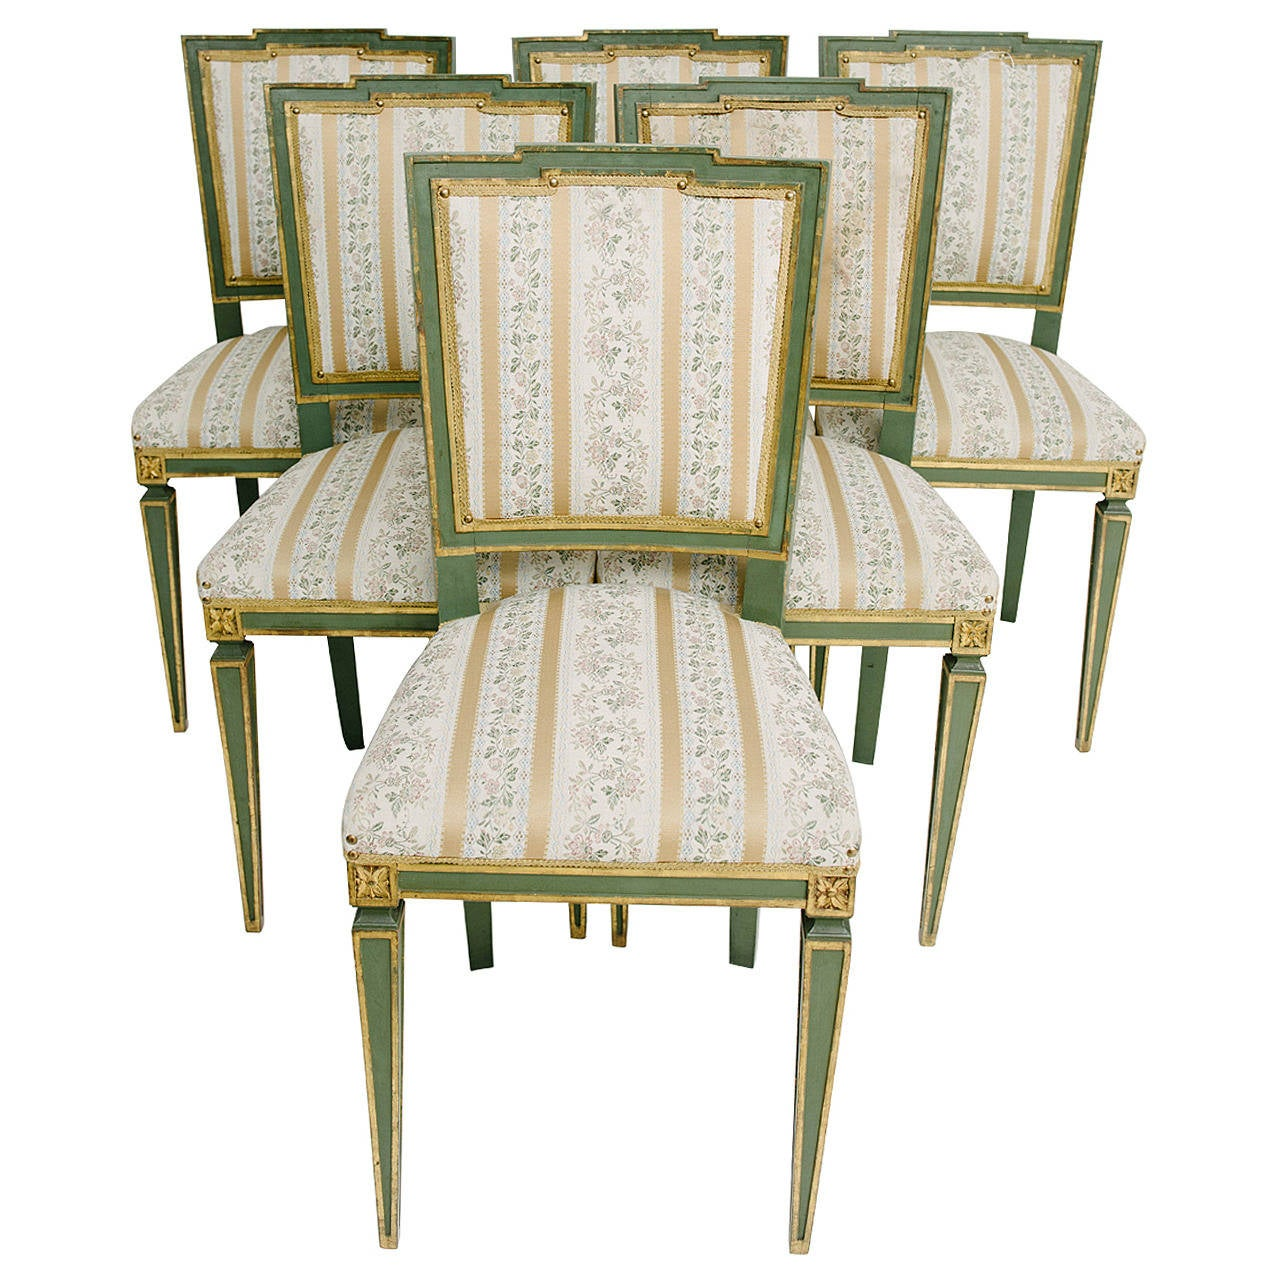 Italian Dining Chairs Painted Louis Xvi Style Italian Dining Chairs At 1stdibs